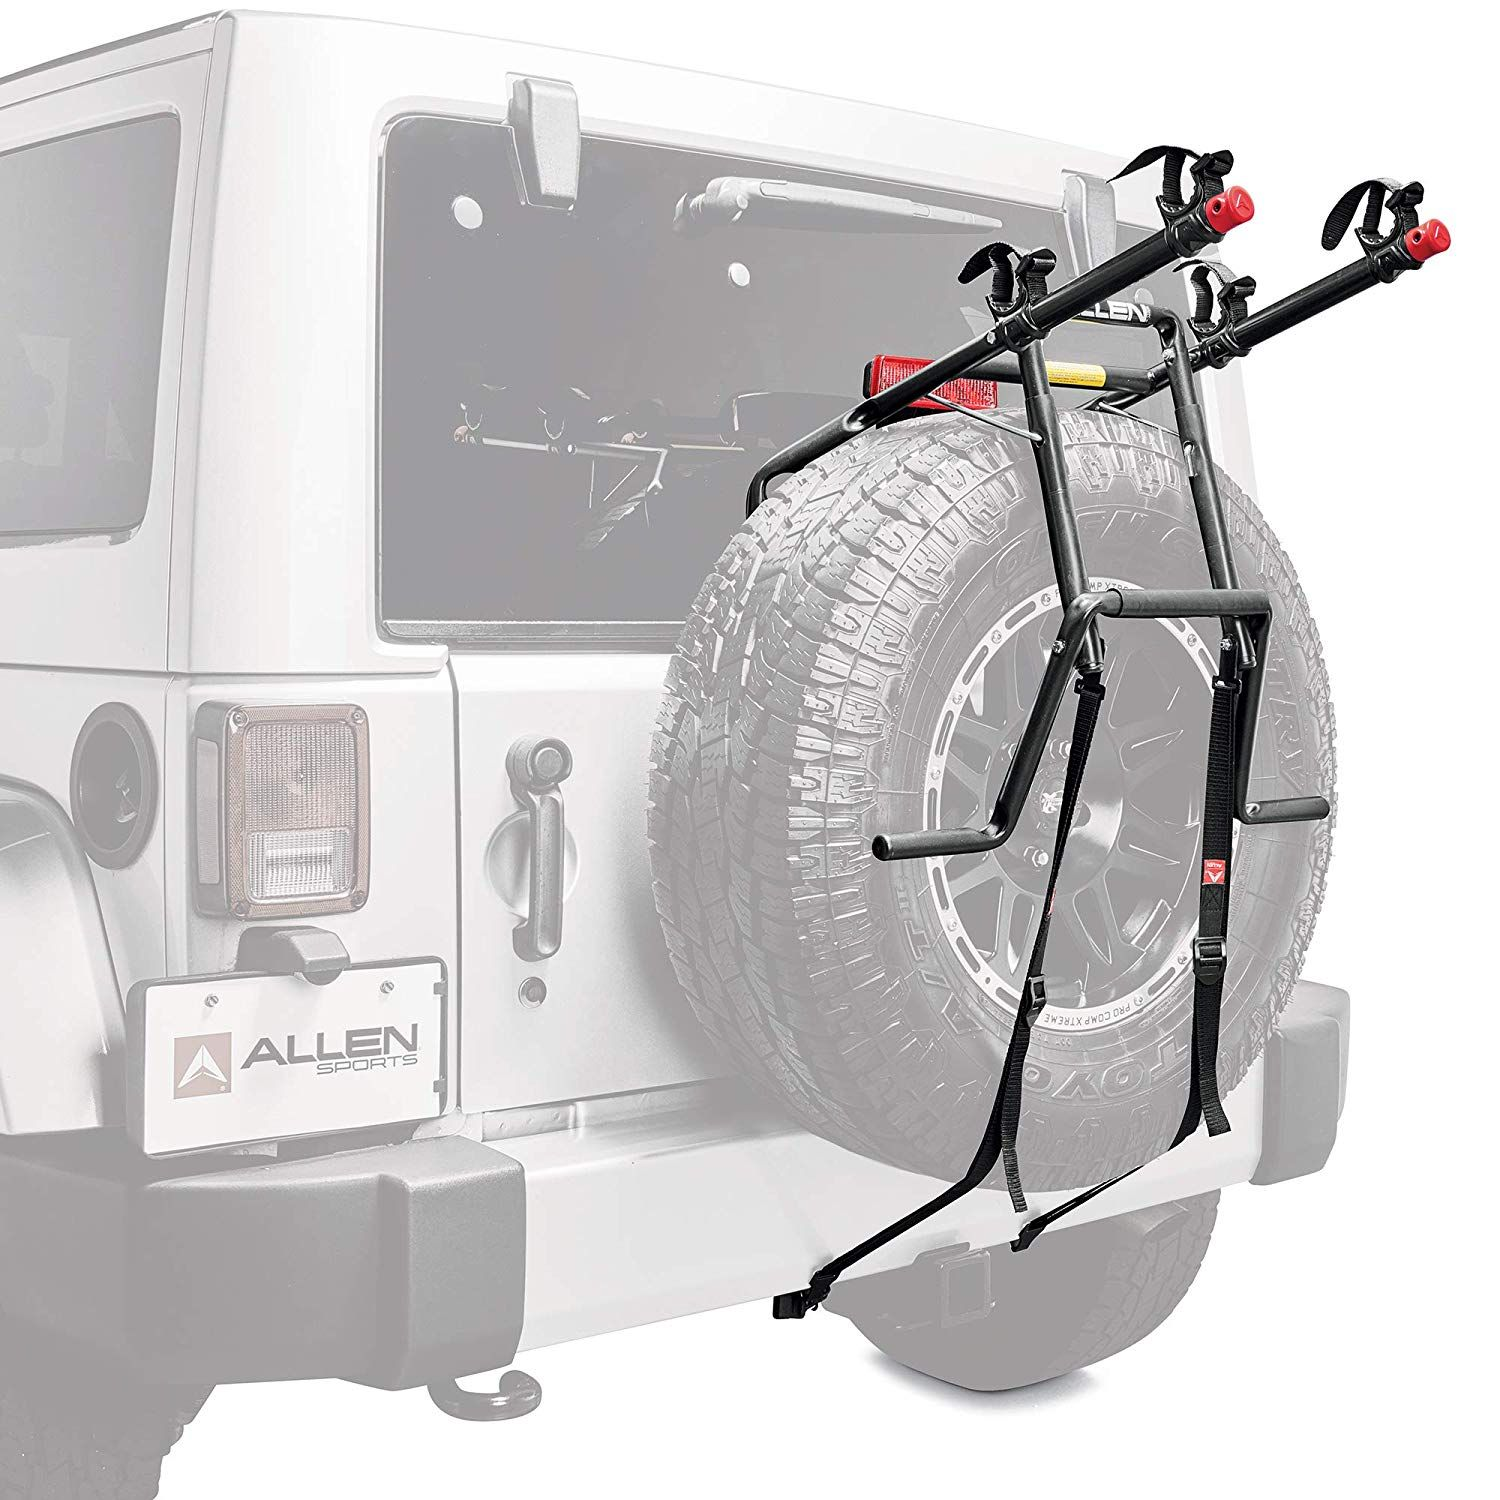 Allen Sports Deluxe 2 Bike Spare Tire Details Can Be Found By Clicking On The Image This Is An Affiliate Link In 2020 Spare Tire Mount Spare Tire Bike